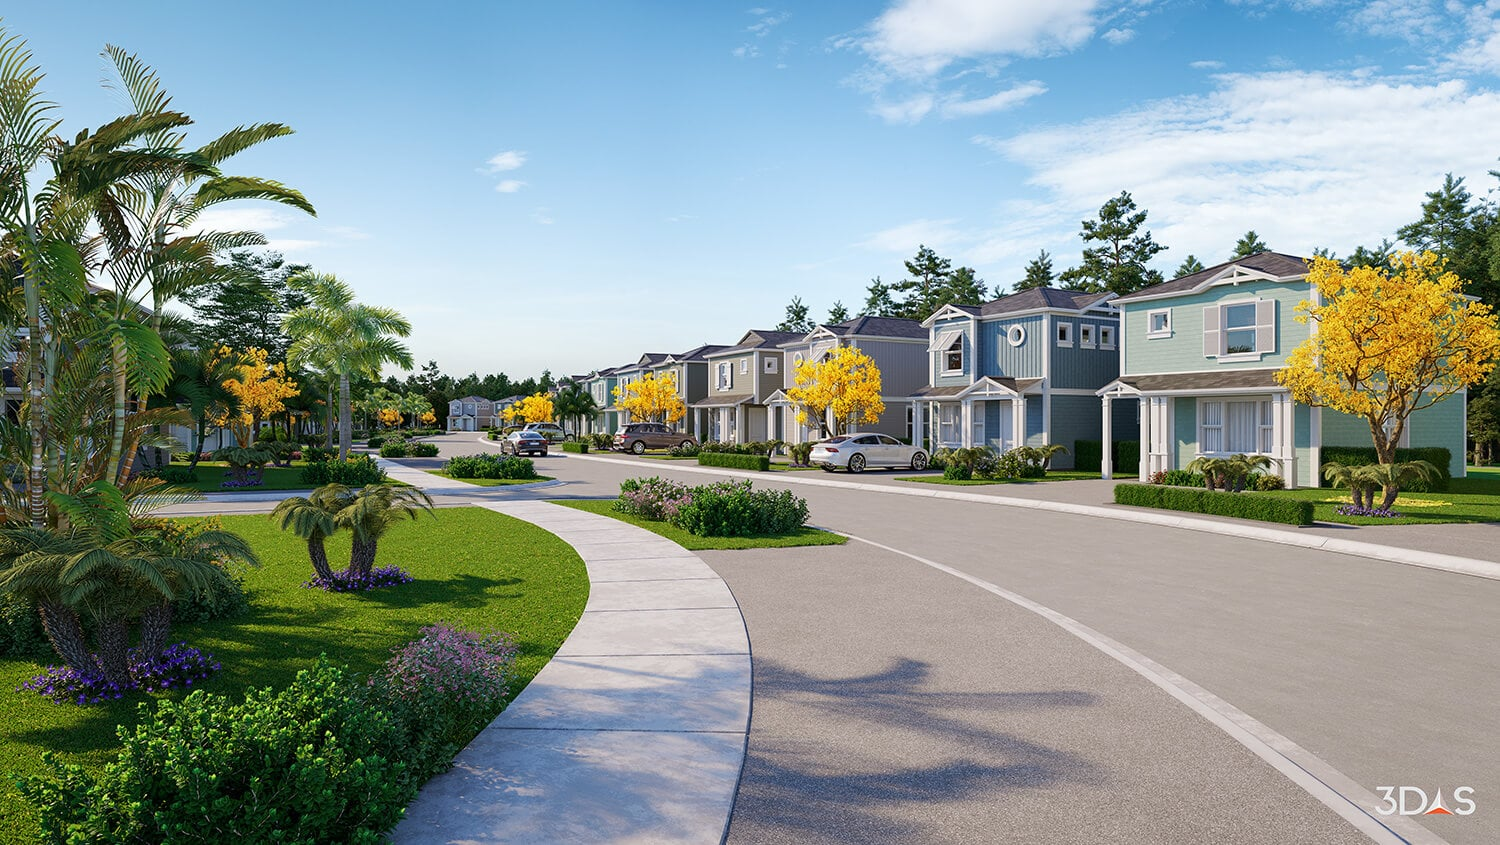 3D rendering of Regal II Residential Neighborhood in East Naples, Florida